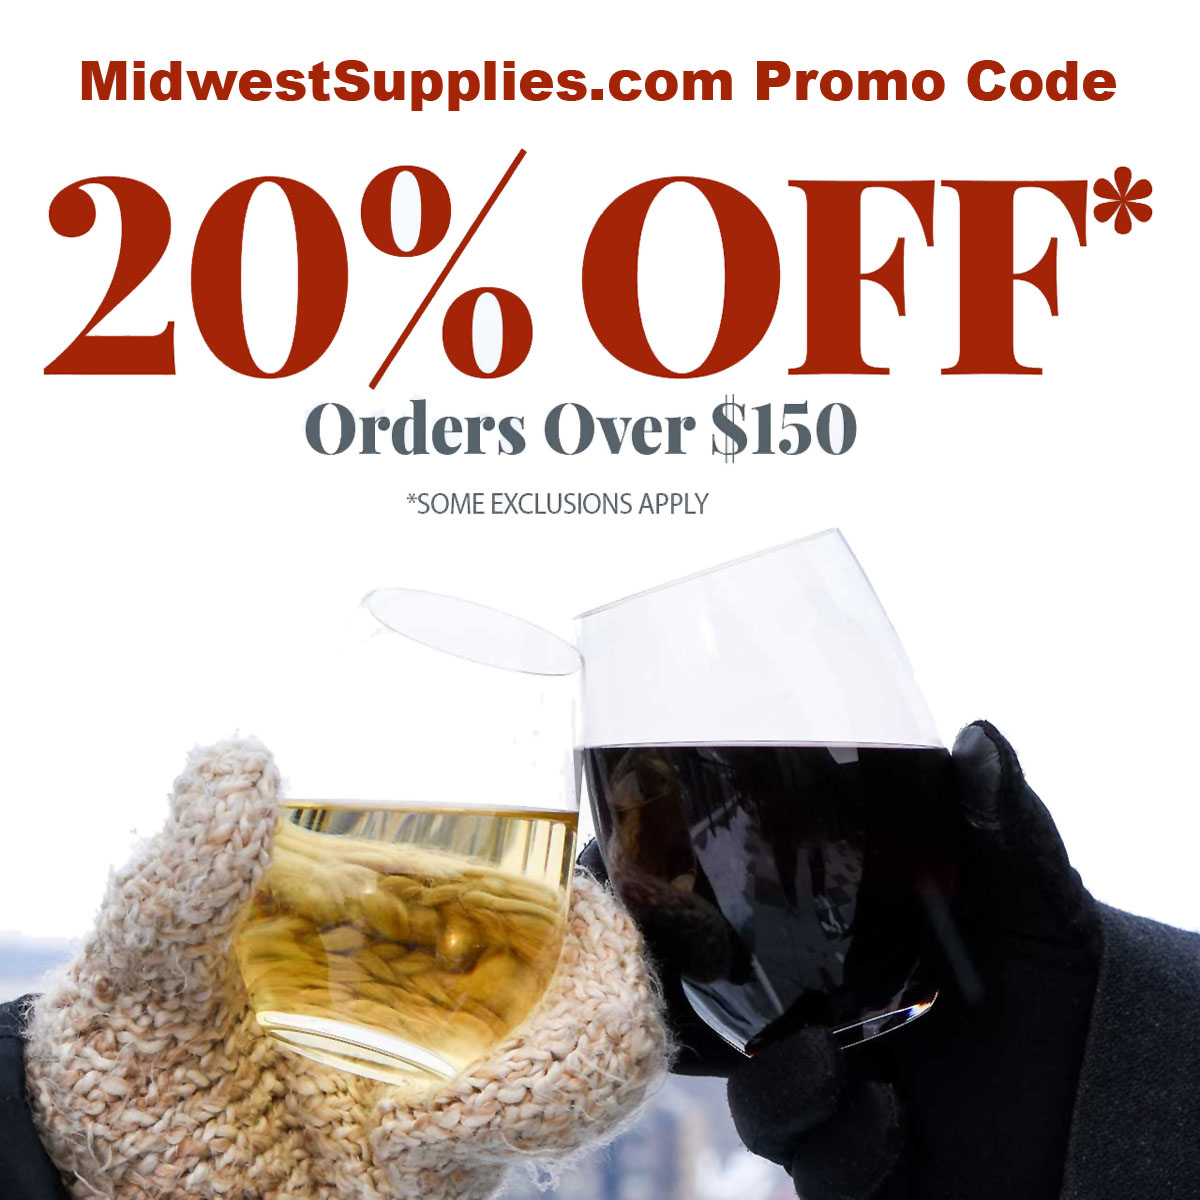 Midwest Supplies Save 20% On Purchases Over $150 at Midwest Supplies with this MidwestSupplies.com promo code! Coupon Code